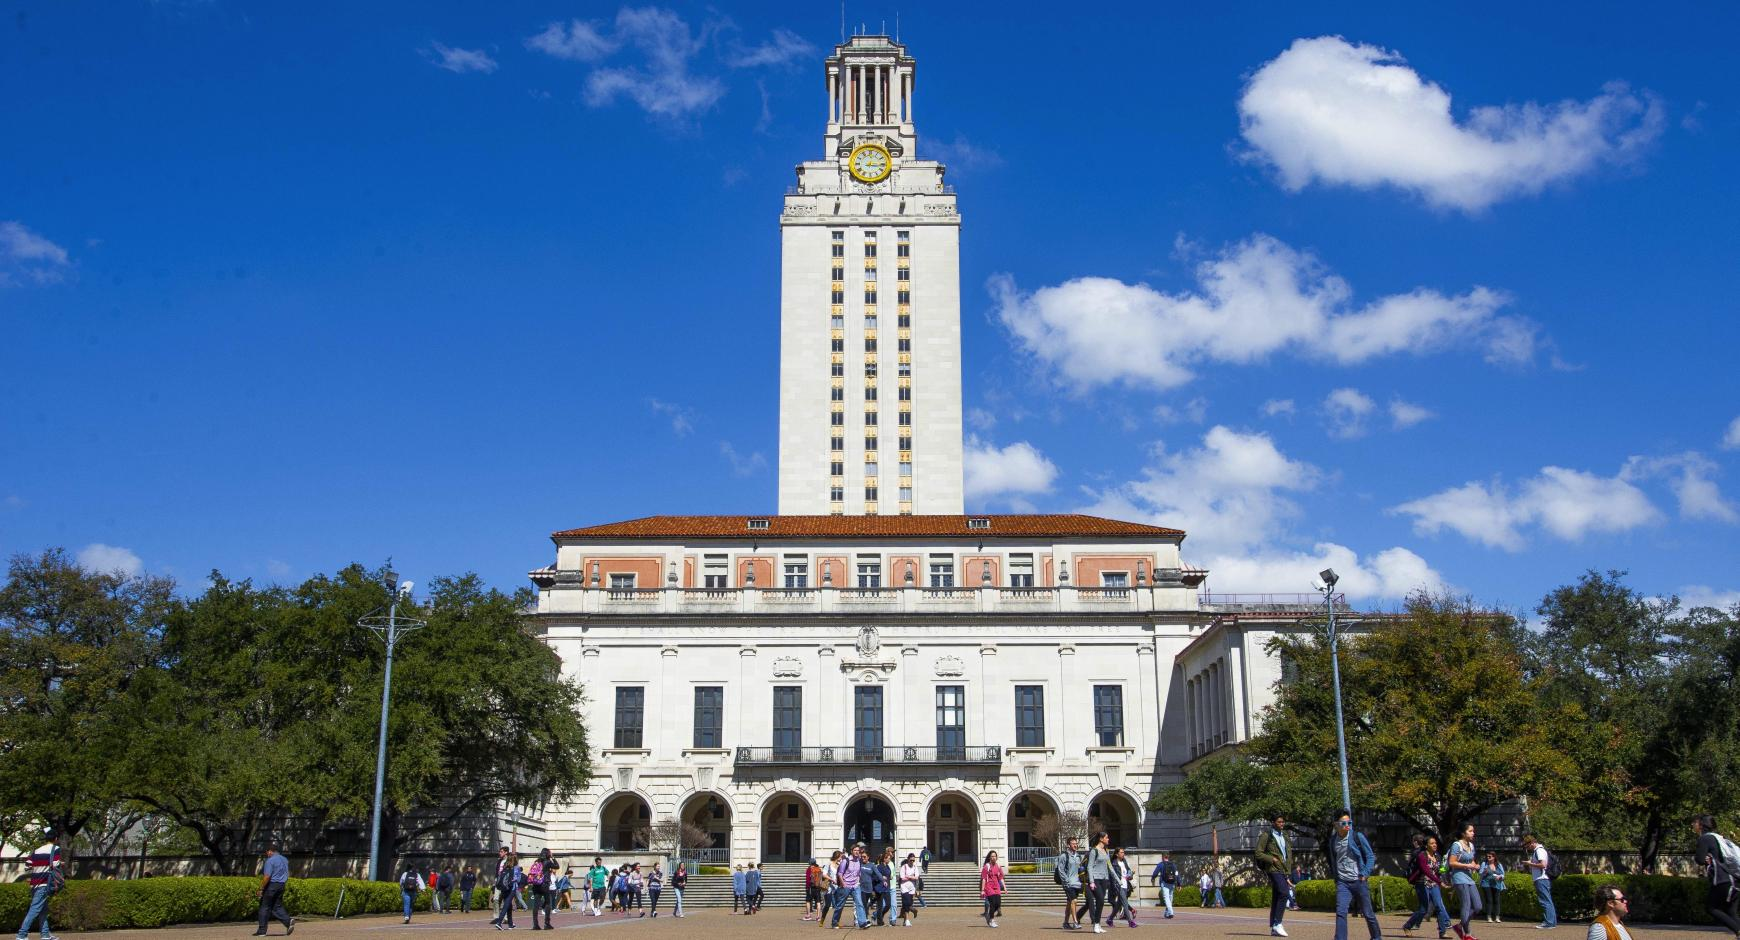 A building on the University of Texas at Austin campus.